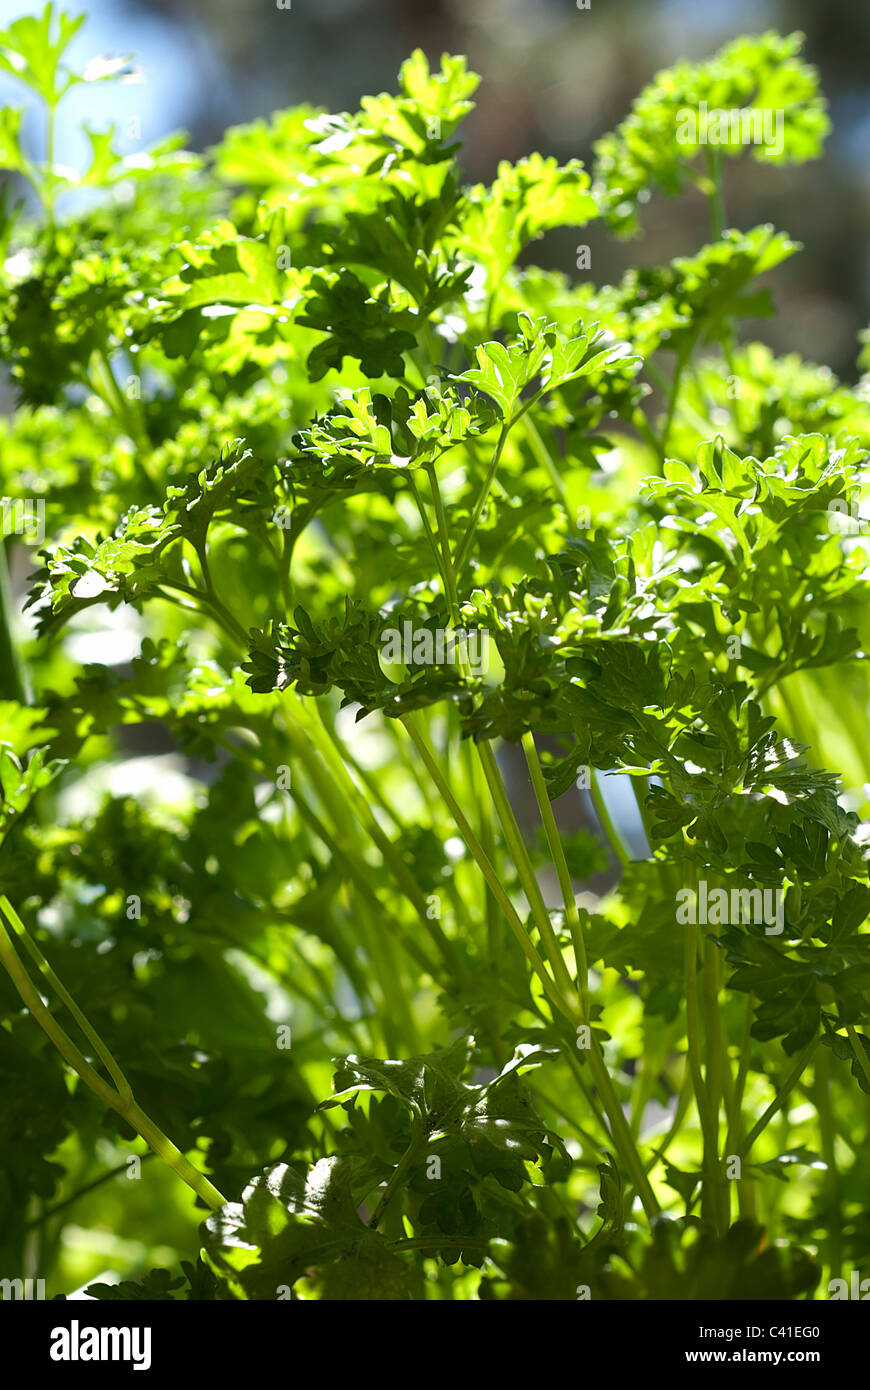 Closeup of a curly garden parsley plant Stock Photo